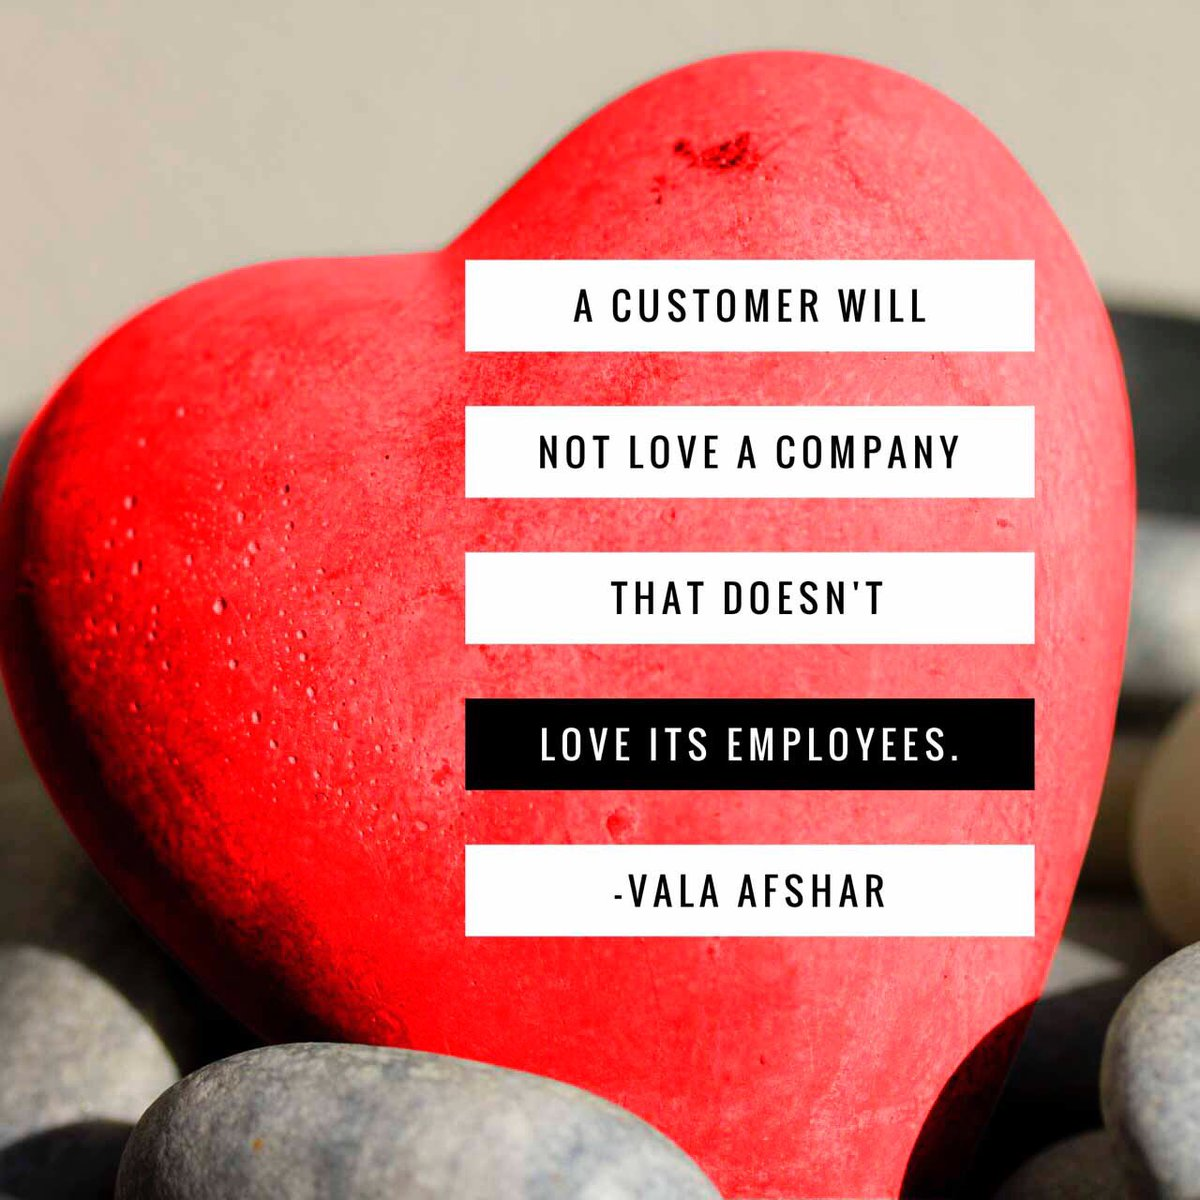 My fave quote about the core of #employerbranding via @ValaAfshar: #DBIchat https://t.co/s78bBHxdUt